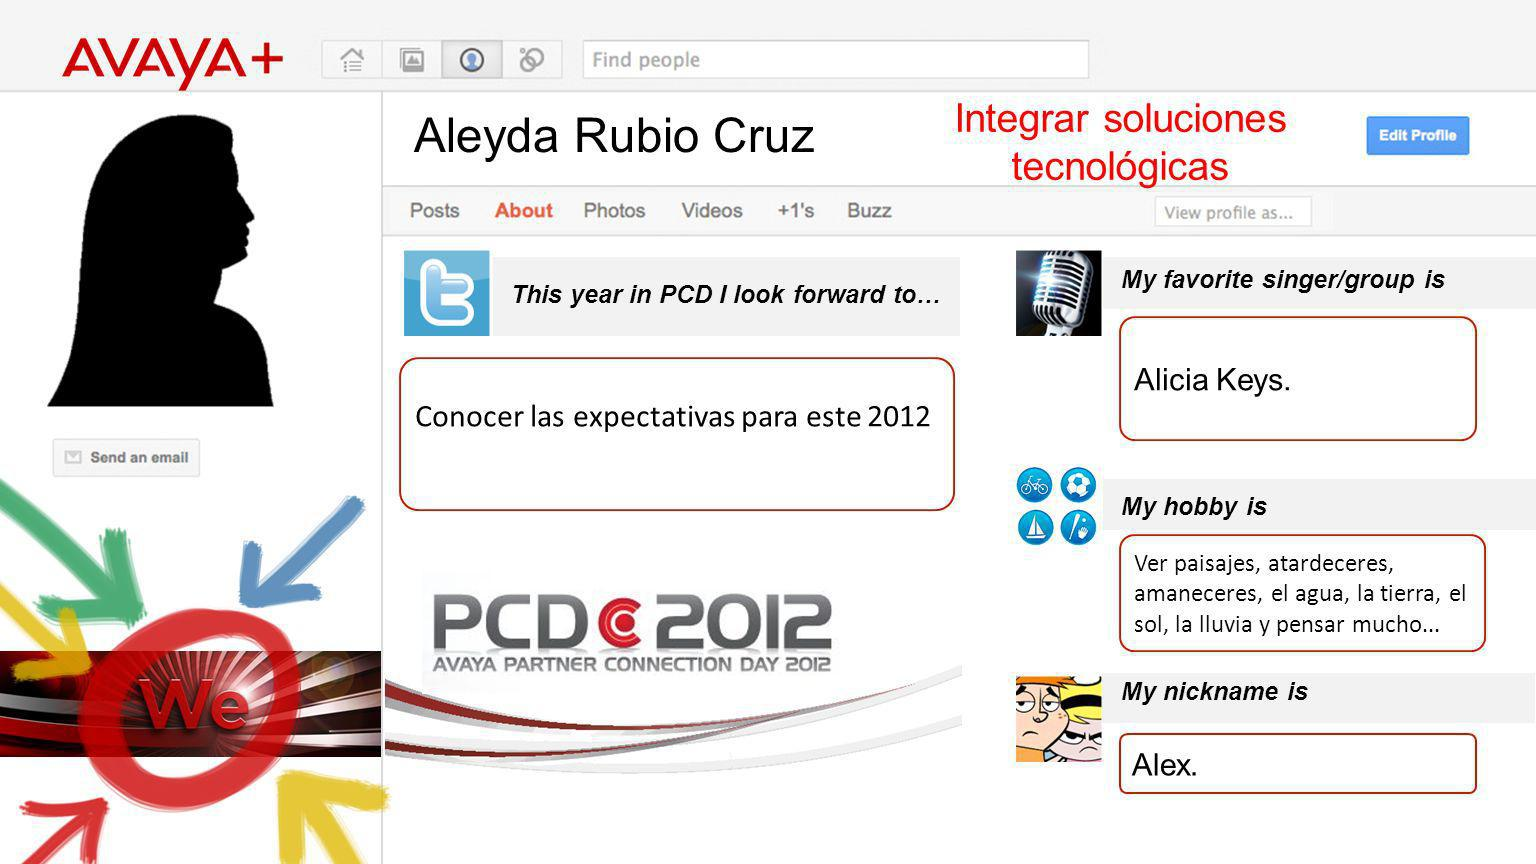 Aleyda Rubio Cruz This year in PCD I look forward to… Integrar soluciones tecnológicas Conocer las expectativas para este 2012 My favorite singer/group is My hobby is My nickname is Alicia Keys.